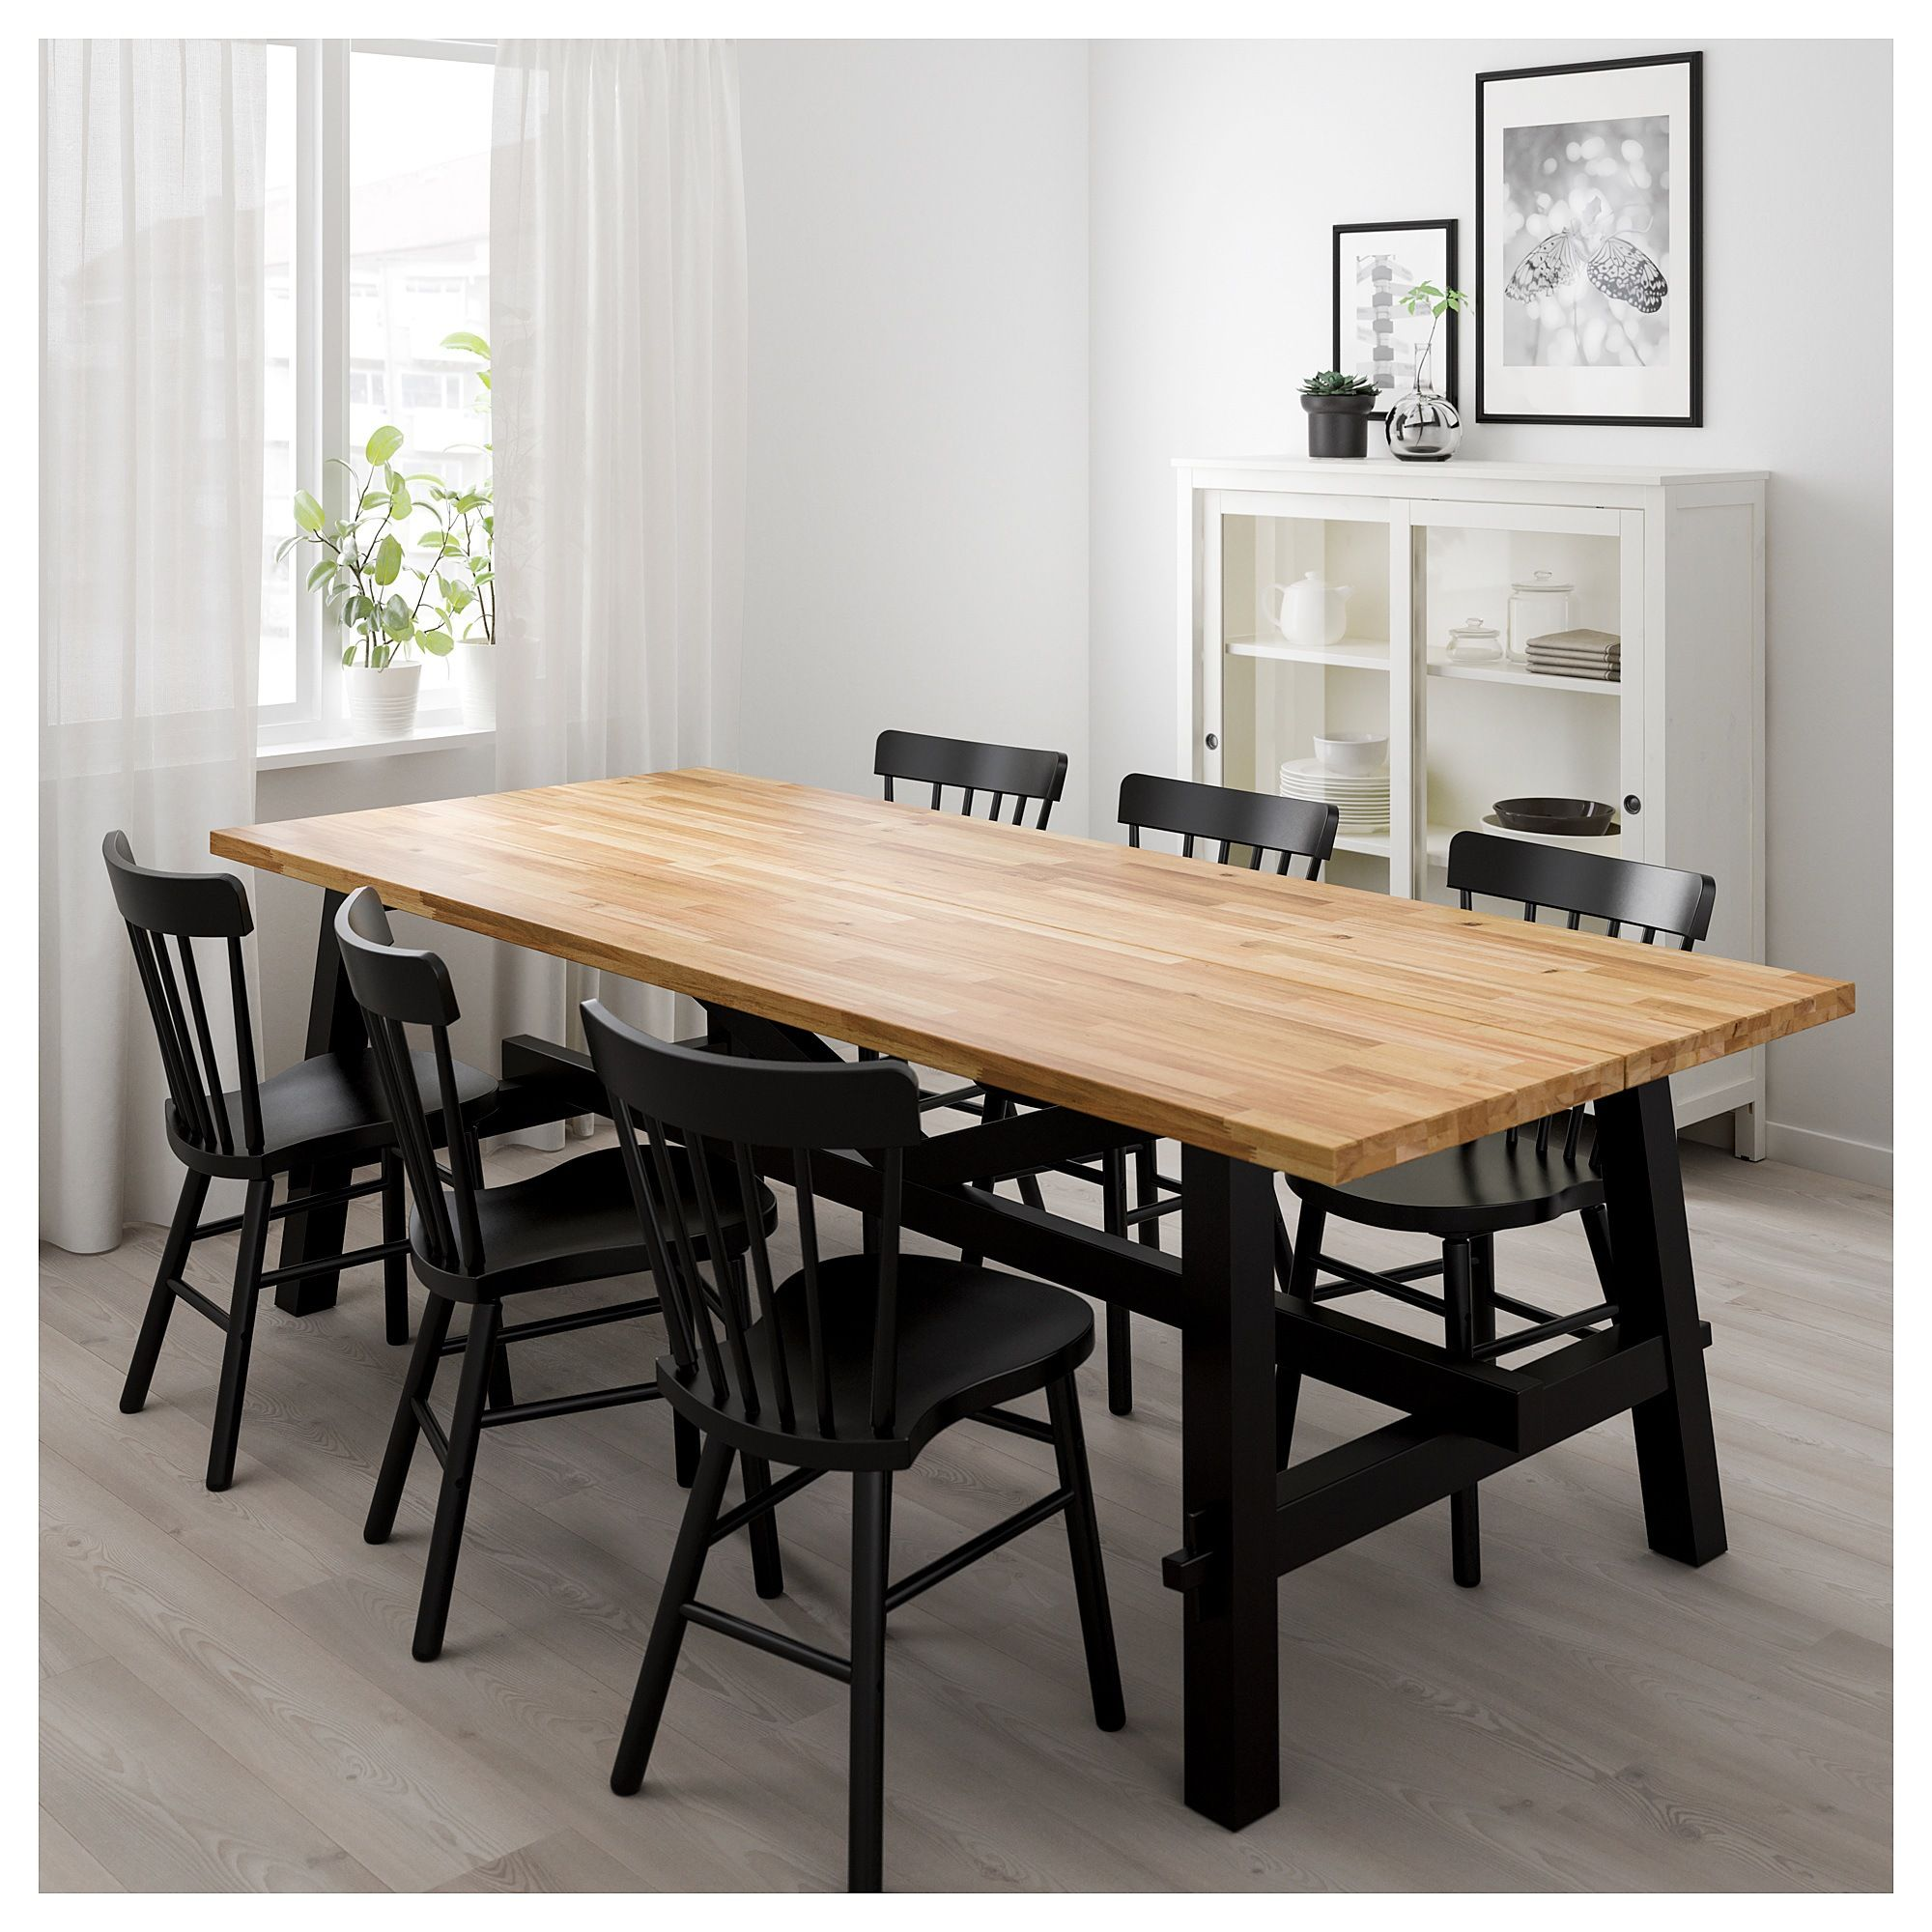 Size 92 1 2x39 3 8 New House Ikea Dining Table